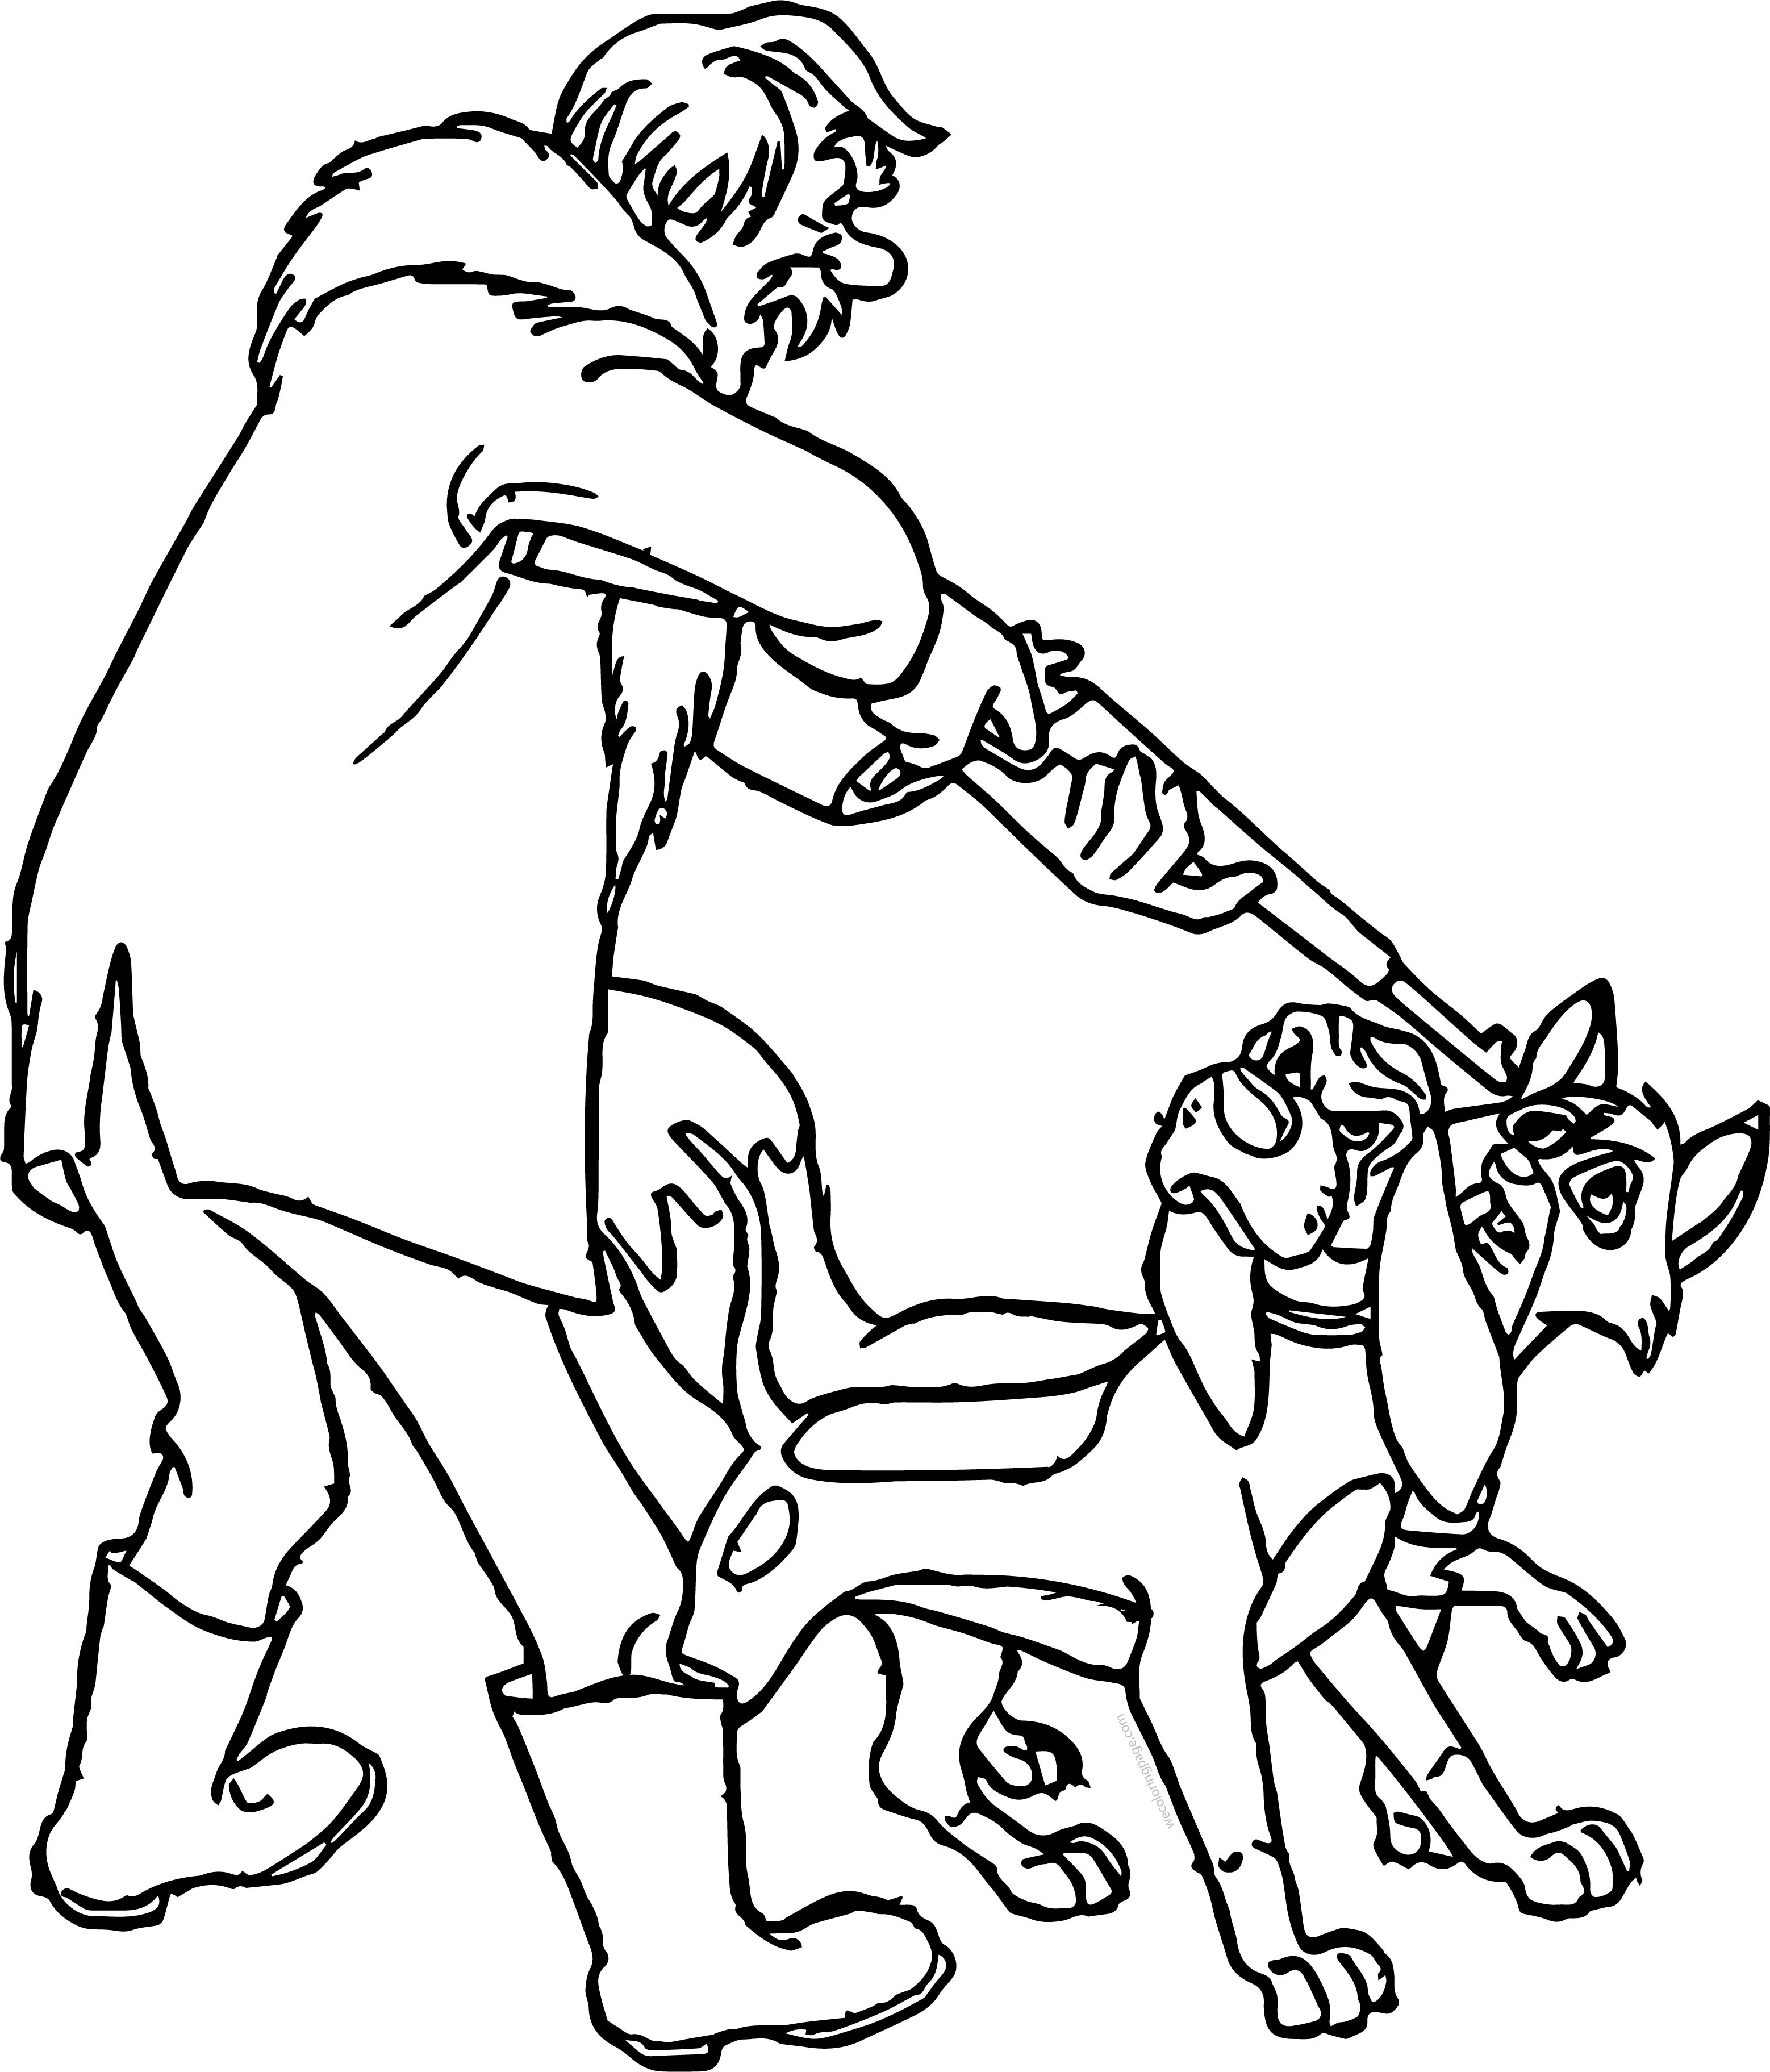 Todd The Fox Dangerous Cartoon Coloring Page